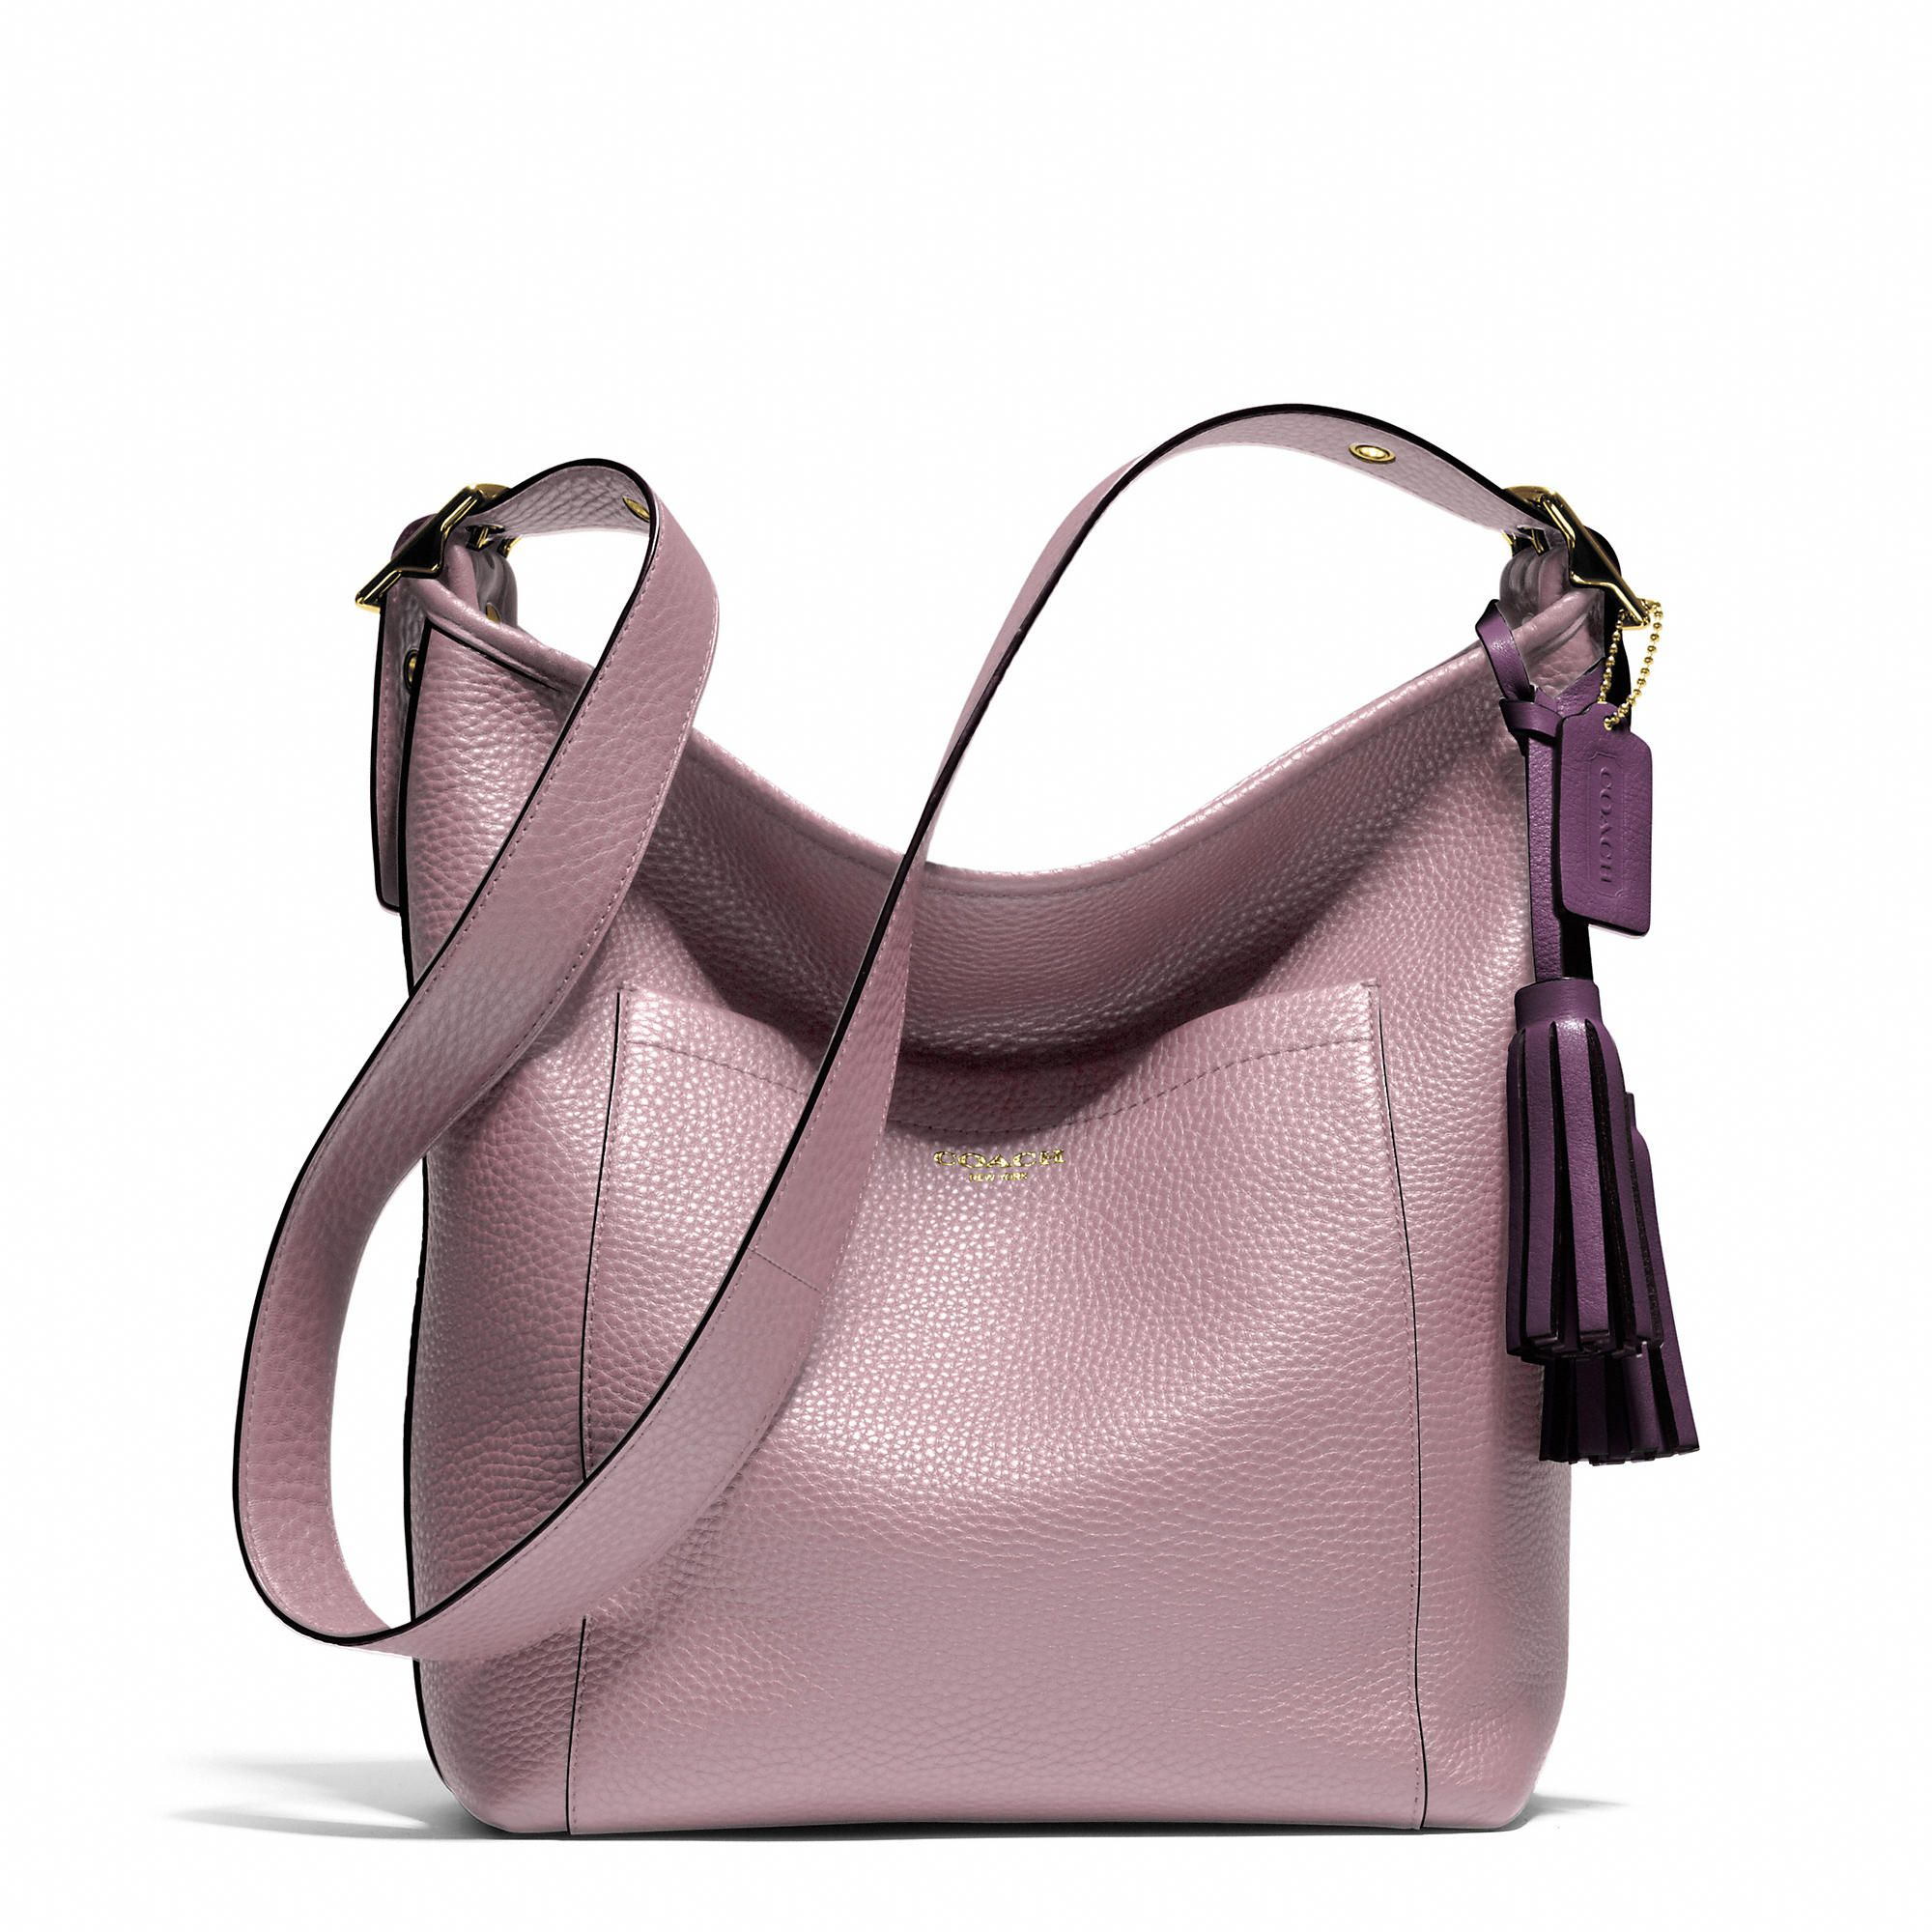 fd8ba622d88 ... best price coach legacy duffle in pebbled leather loving this lavender  b1611 e49d8